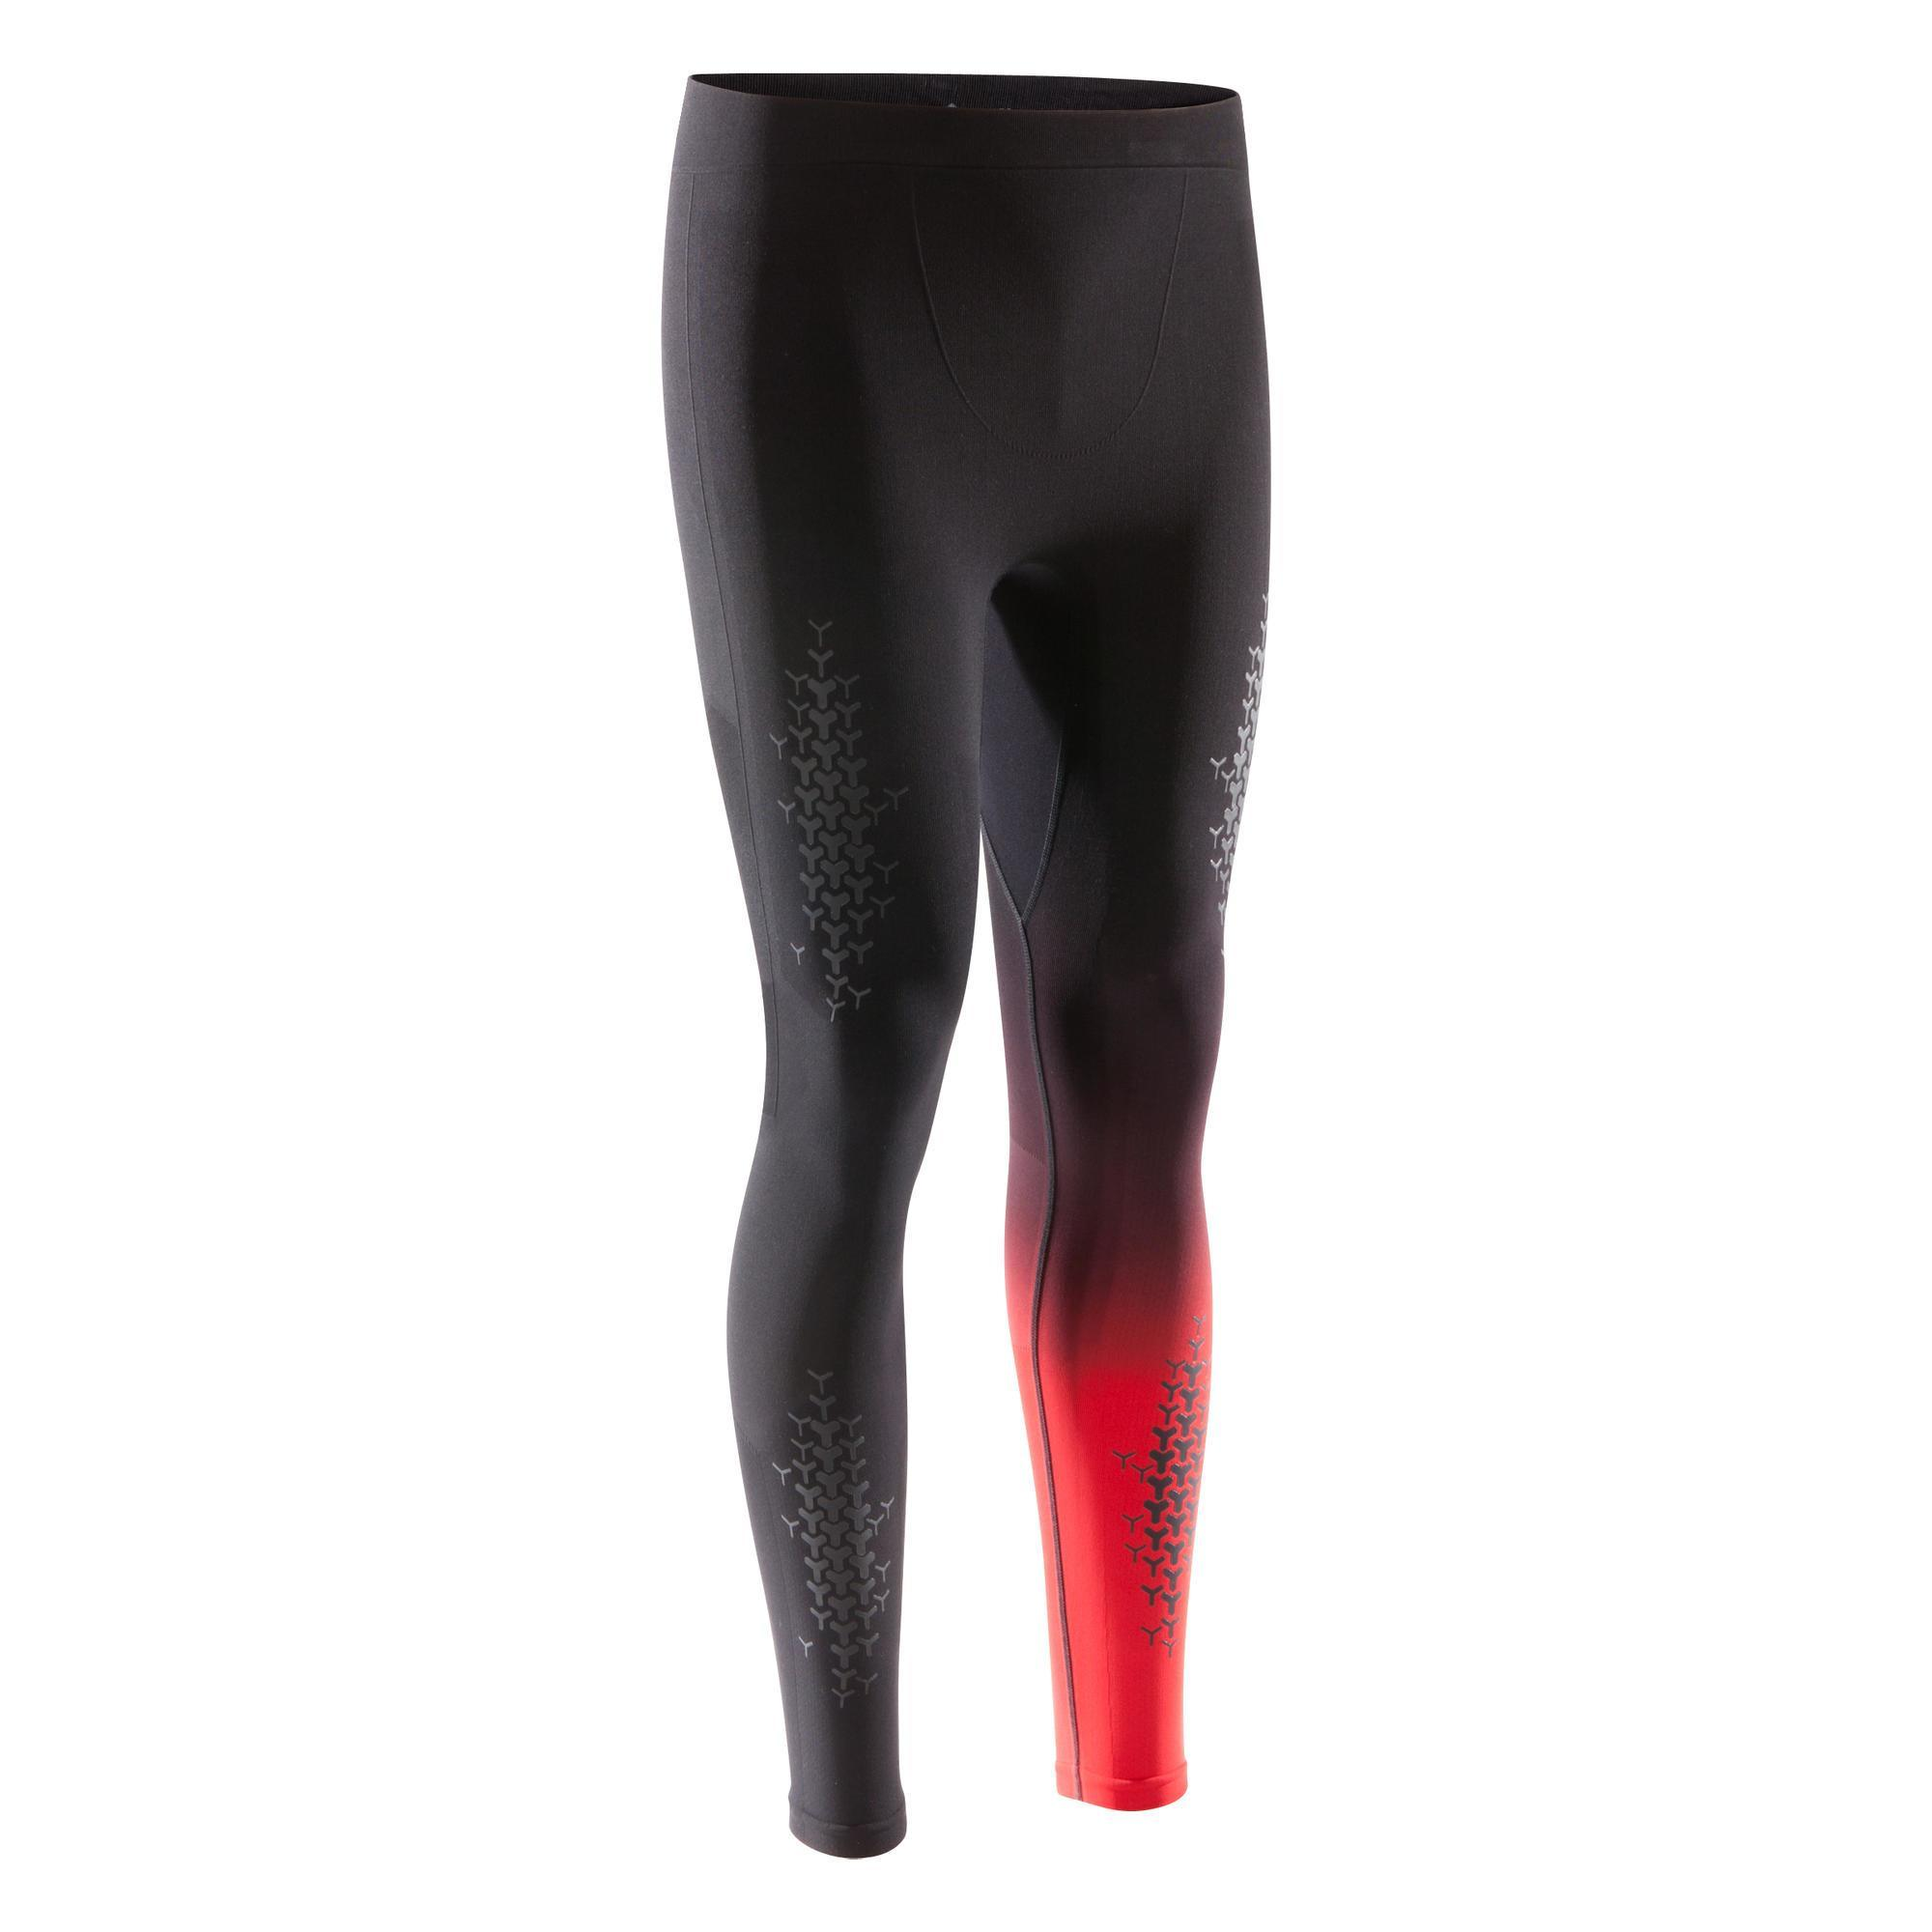 Heren Sportlegging.Leggings Heren Decathlon